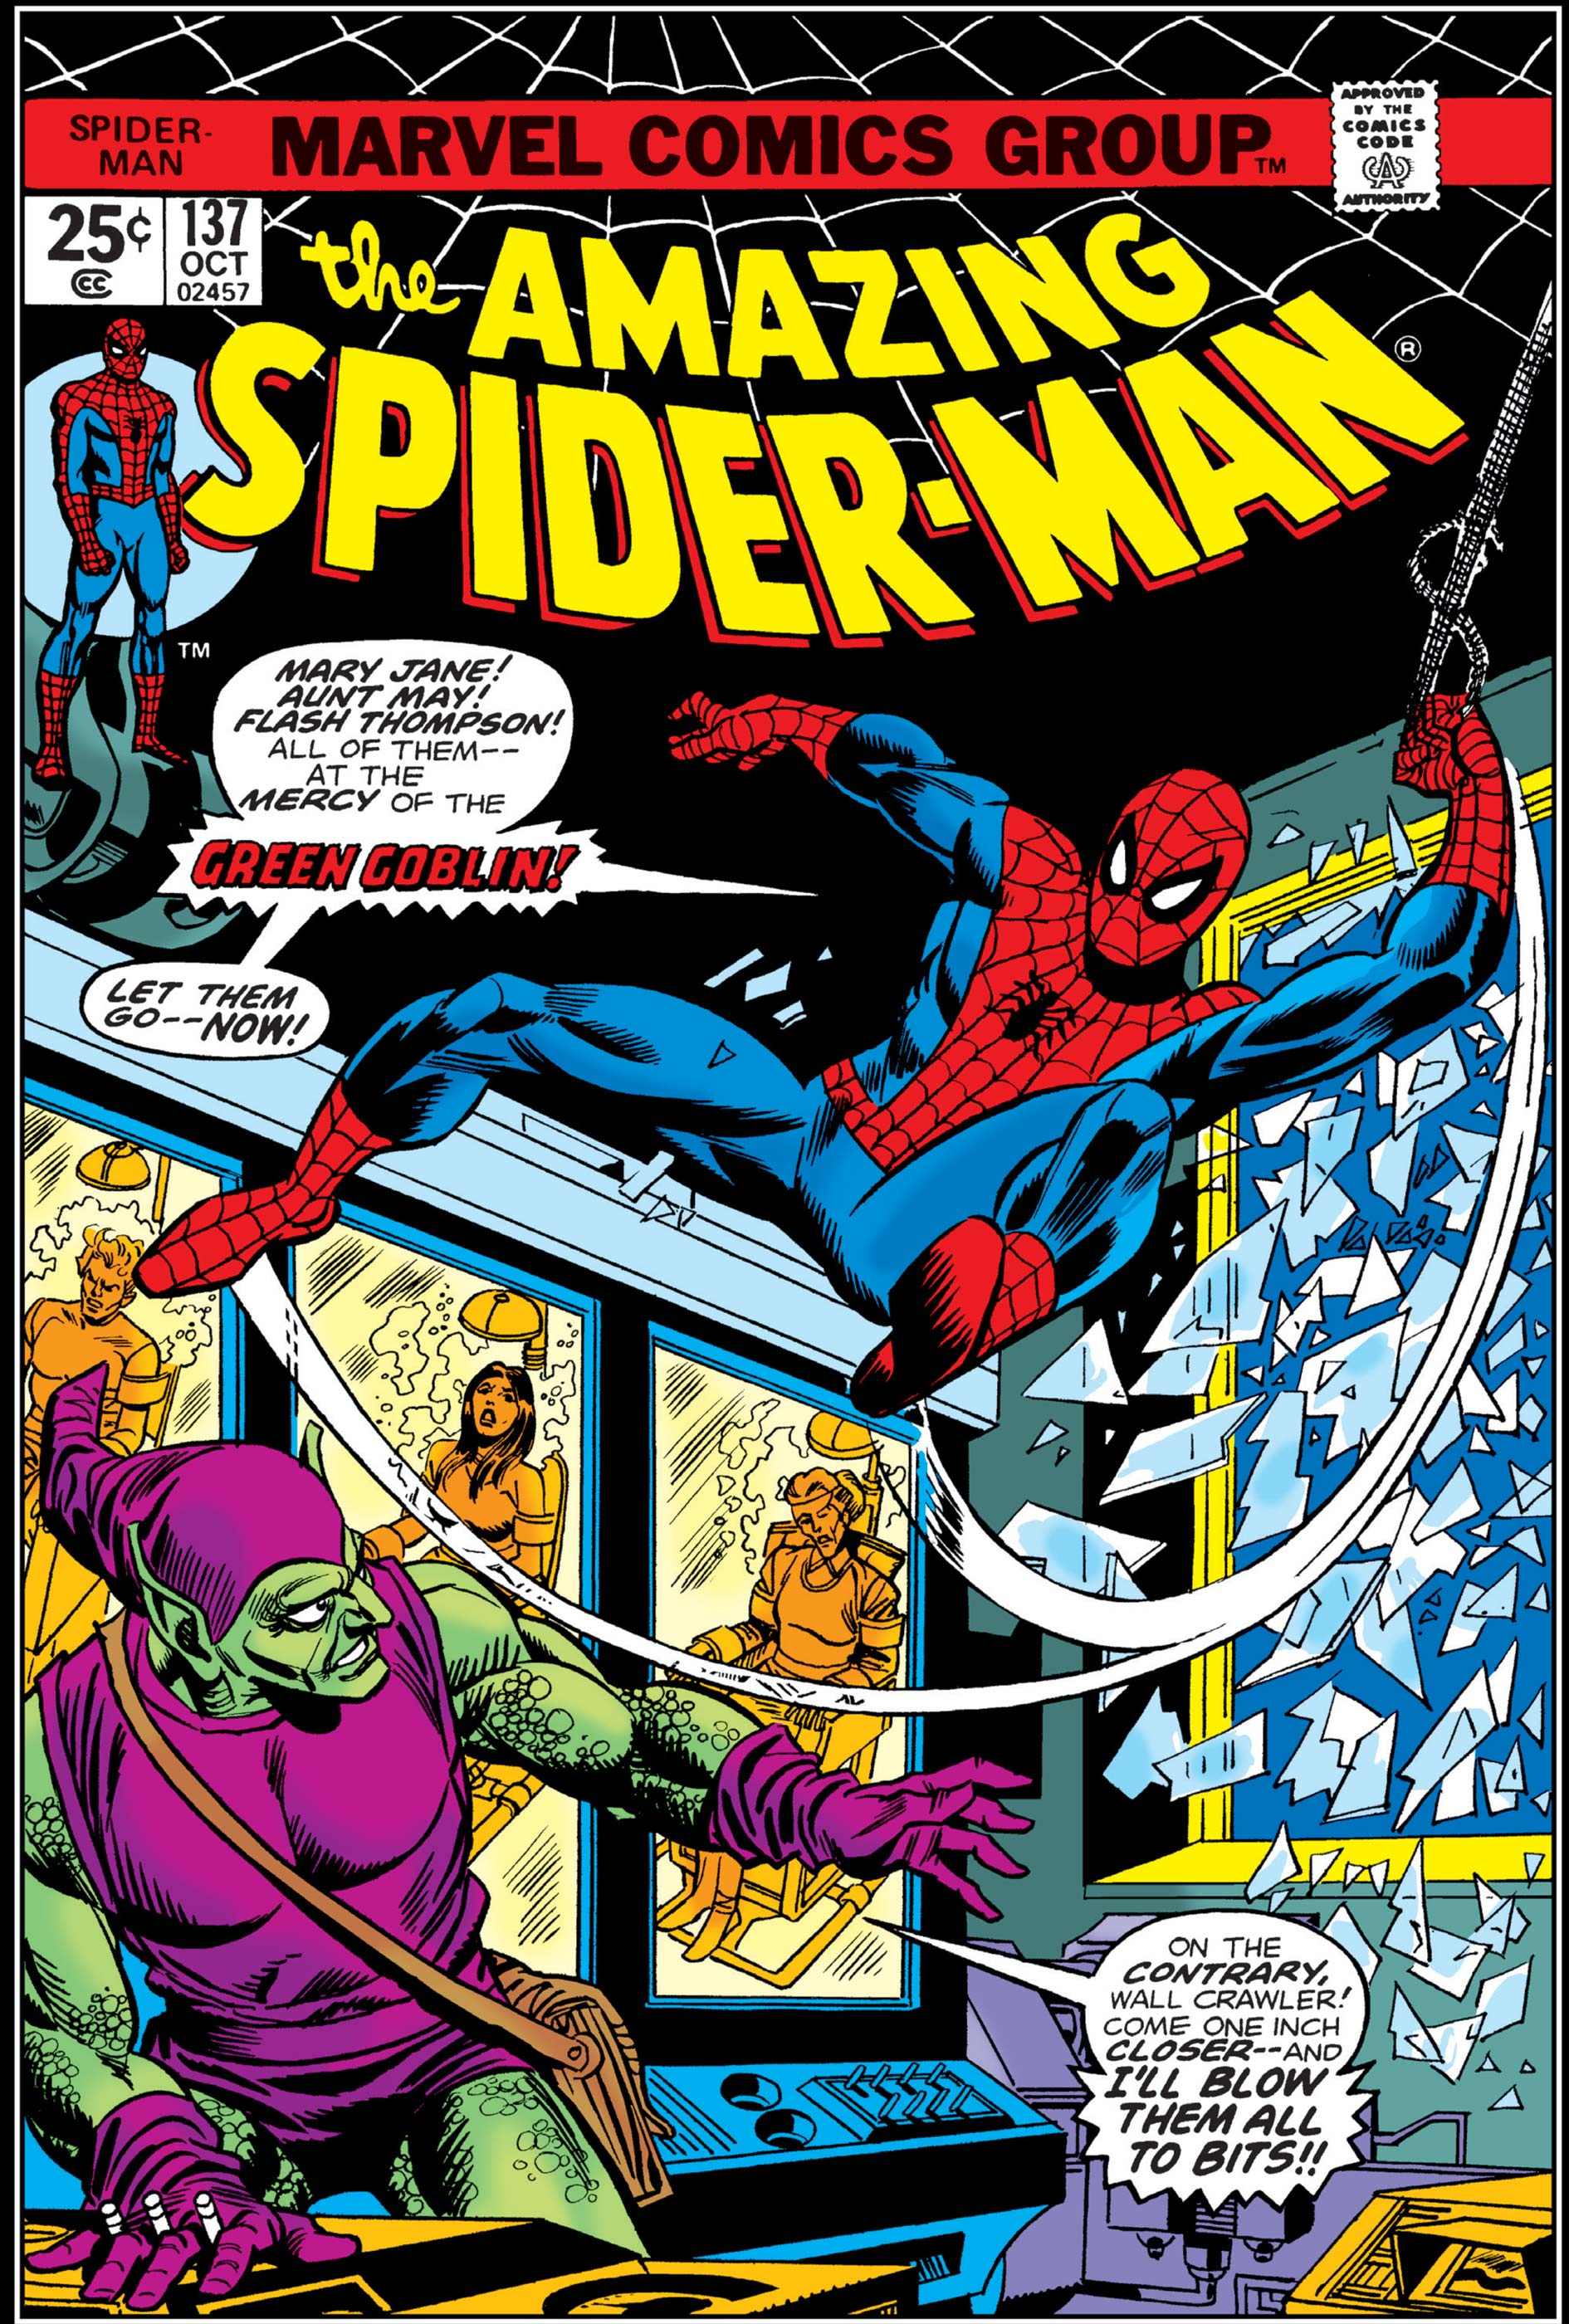 The Amazing Spider-Man (1963) #137